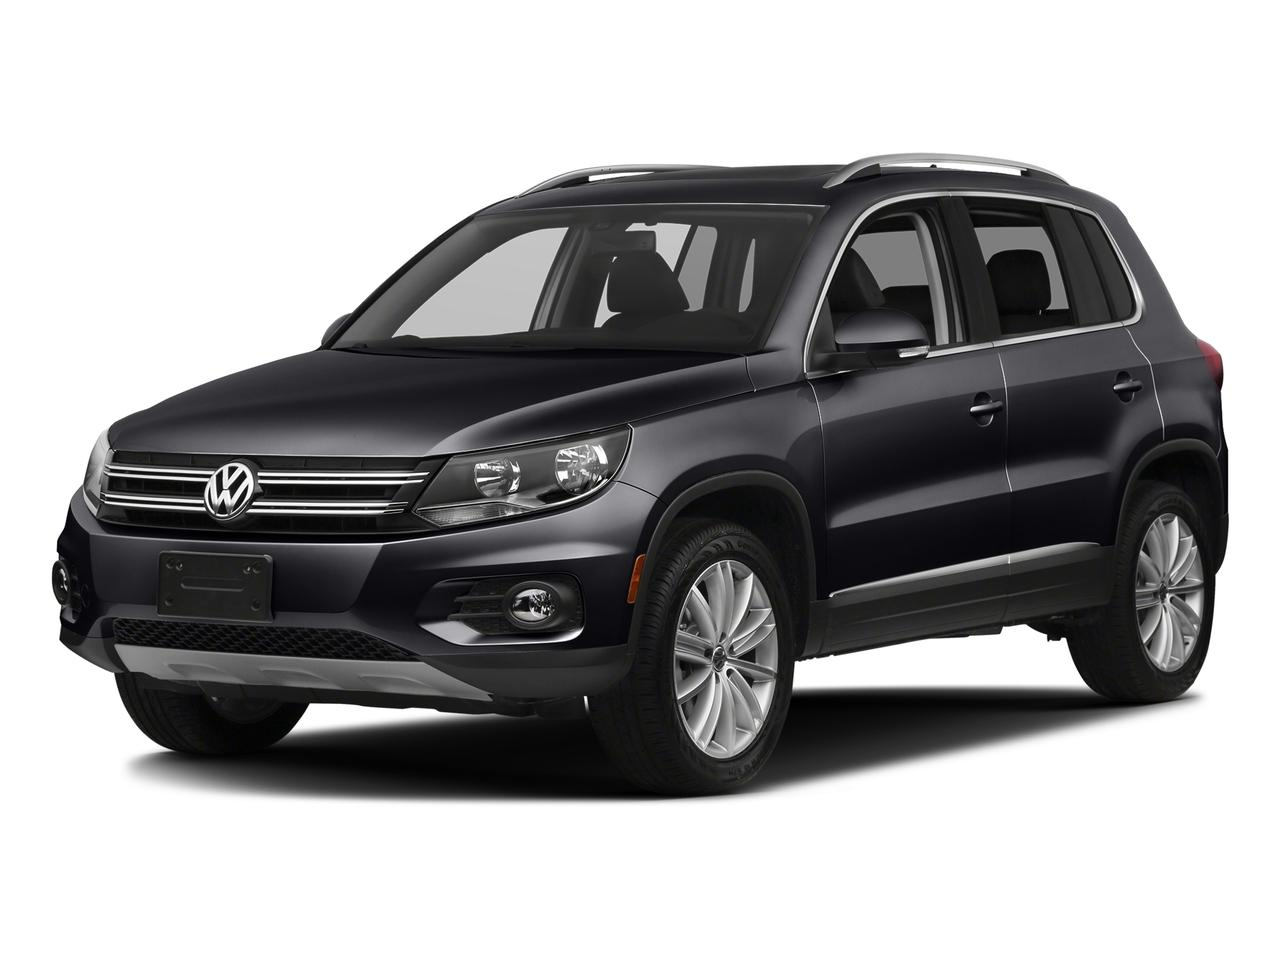 2017 Volkswagen Tiguan Vehicle Photo in Bowie, MD 20716